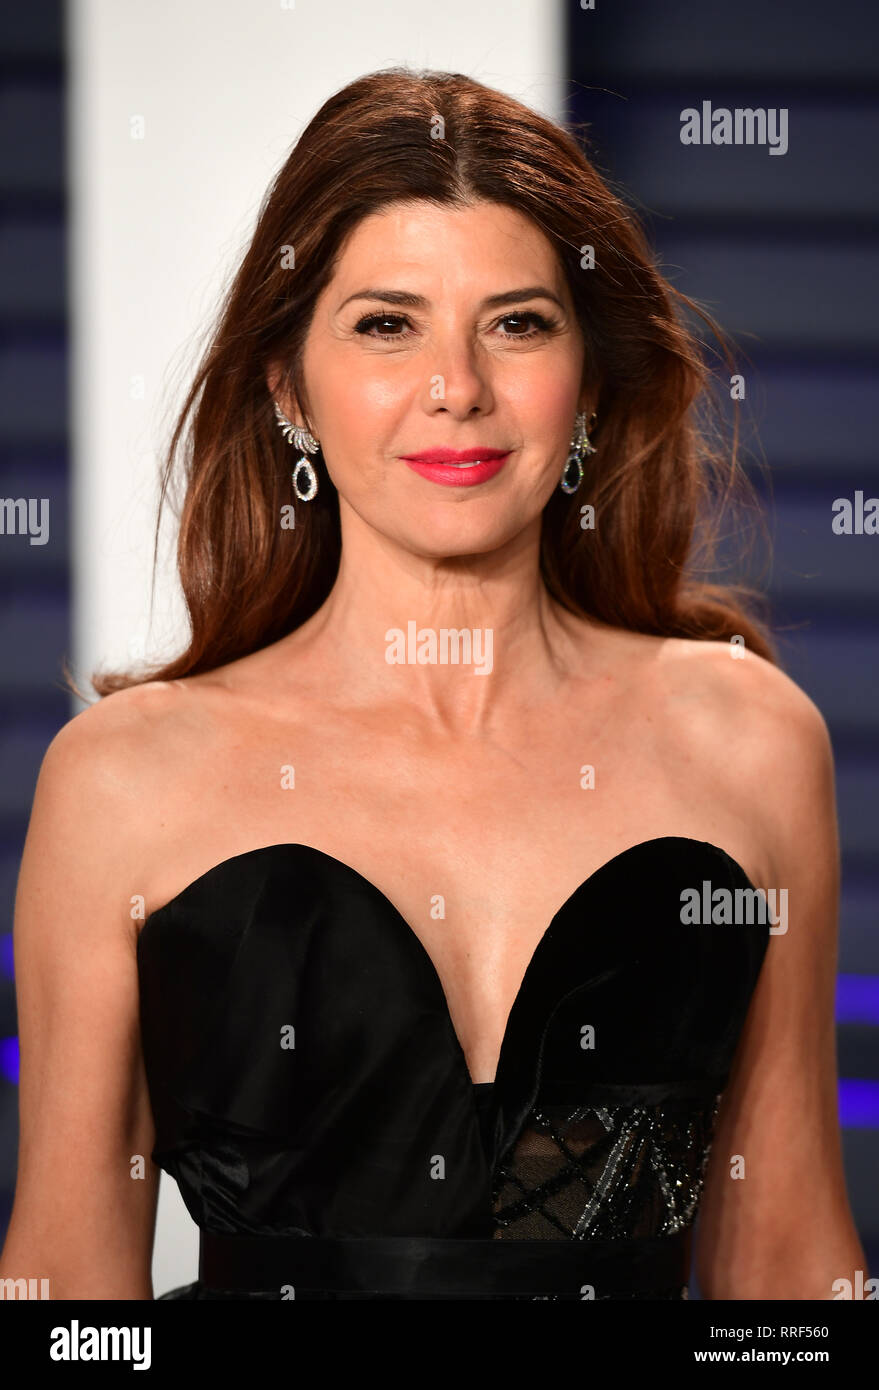 Marisa Tomei attending the Vanity Fair Oscar Party held at the Wallis Annenberg Center for the Performing Arts in Beverly Hills, Los Angeles, California, USA. - Stock Image